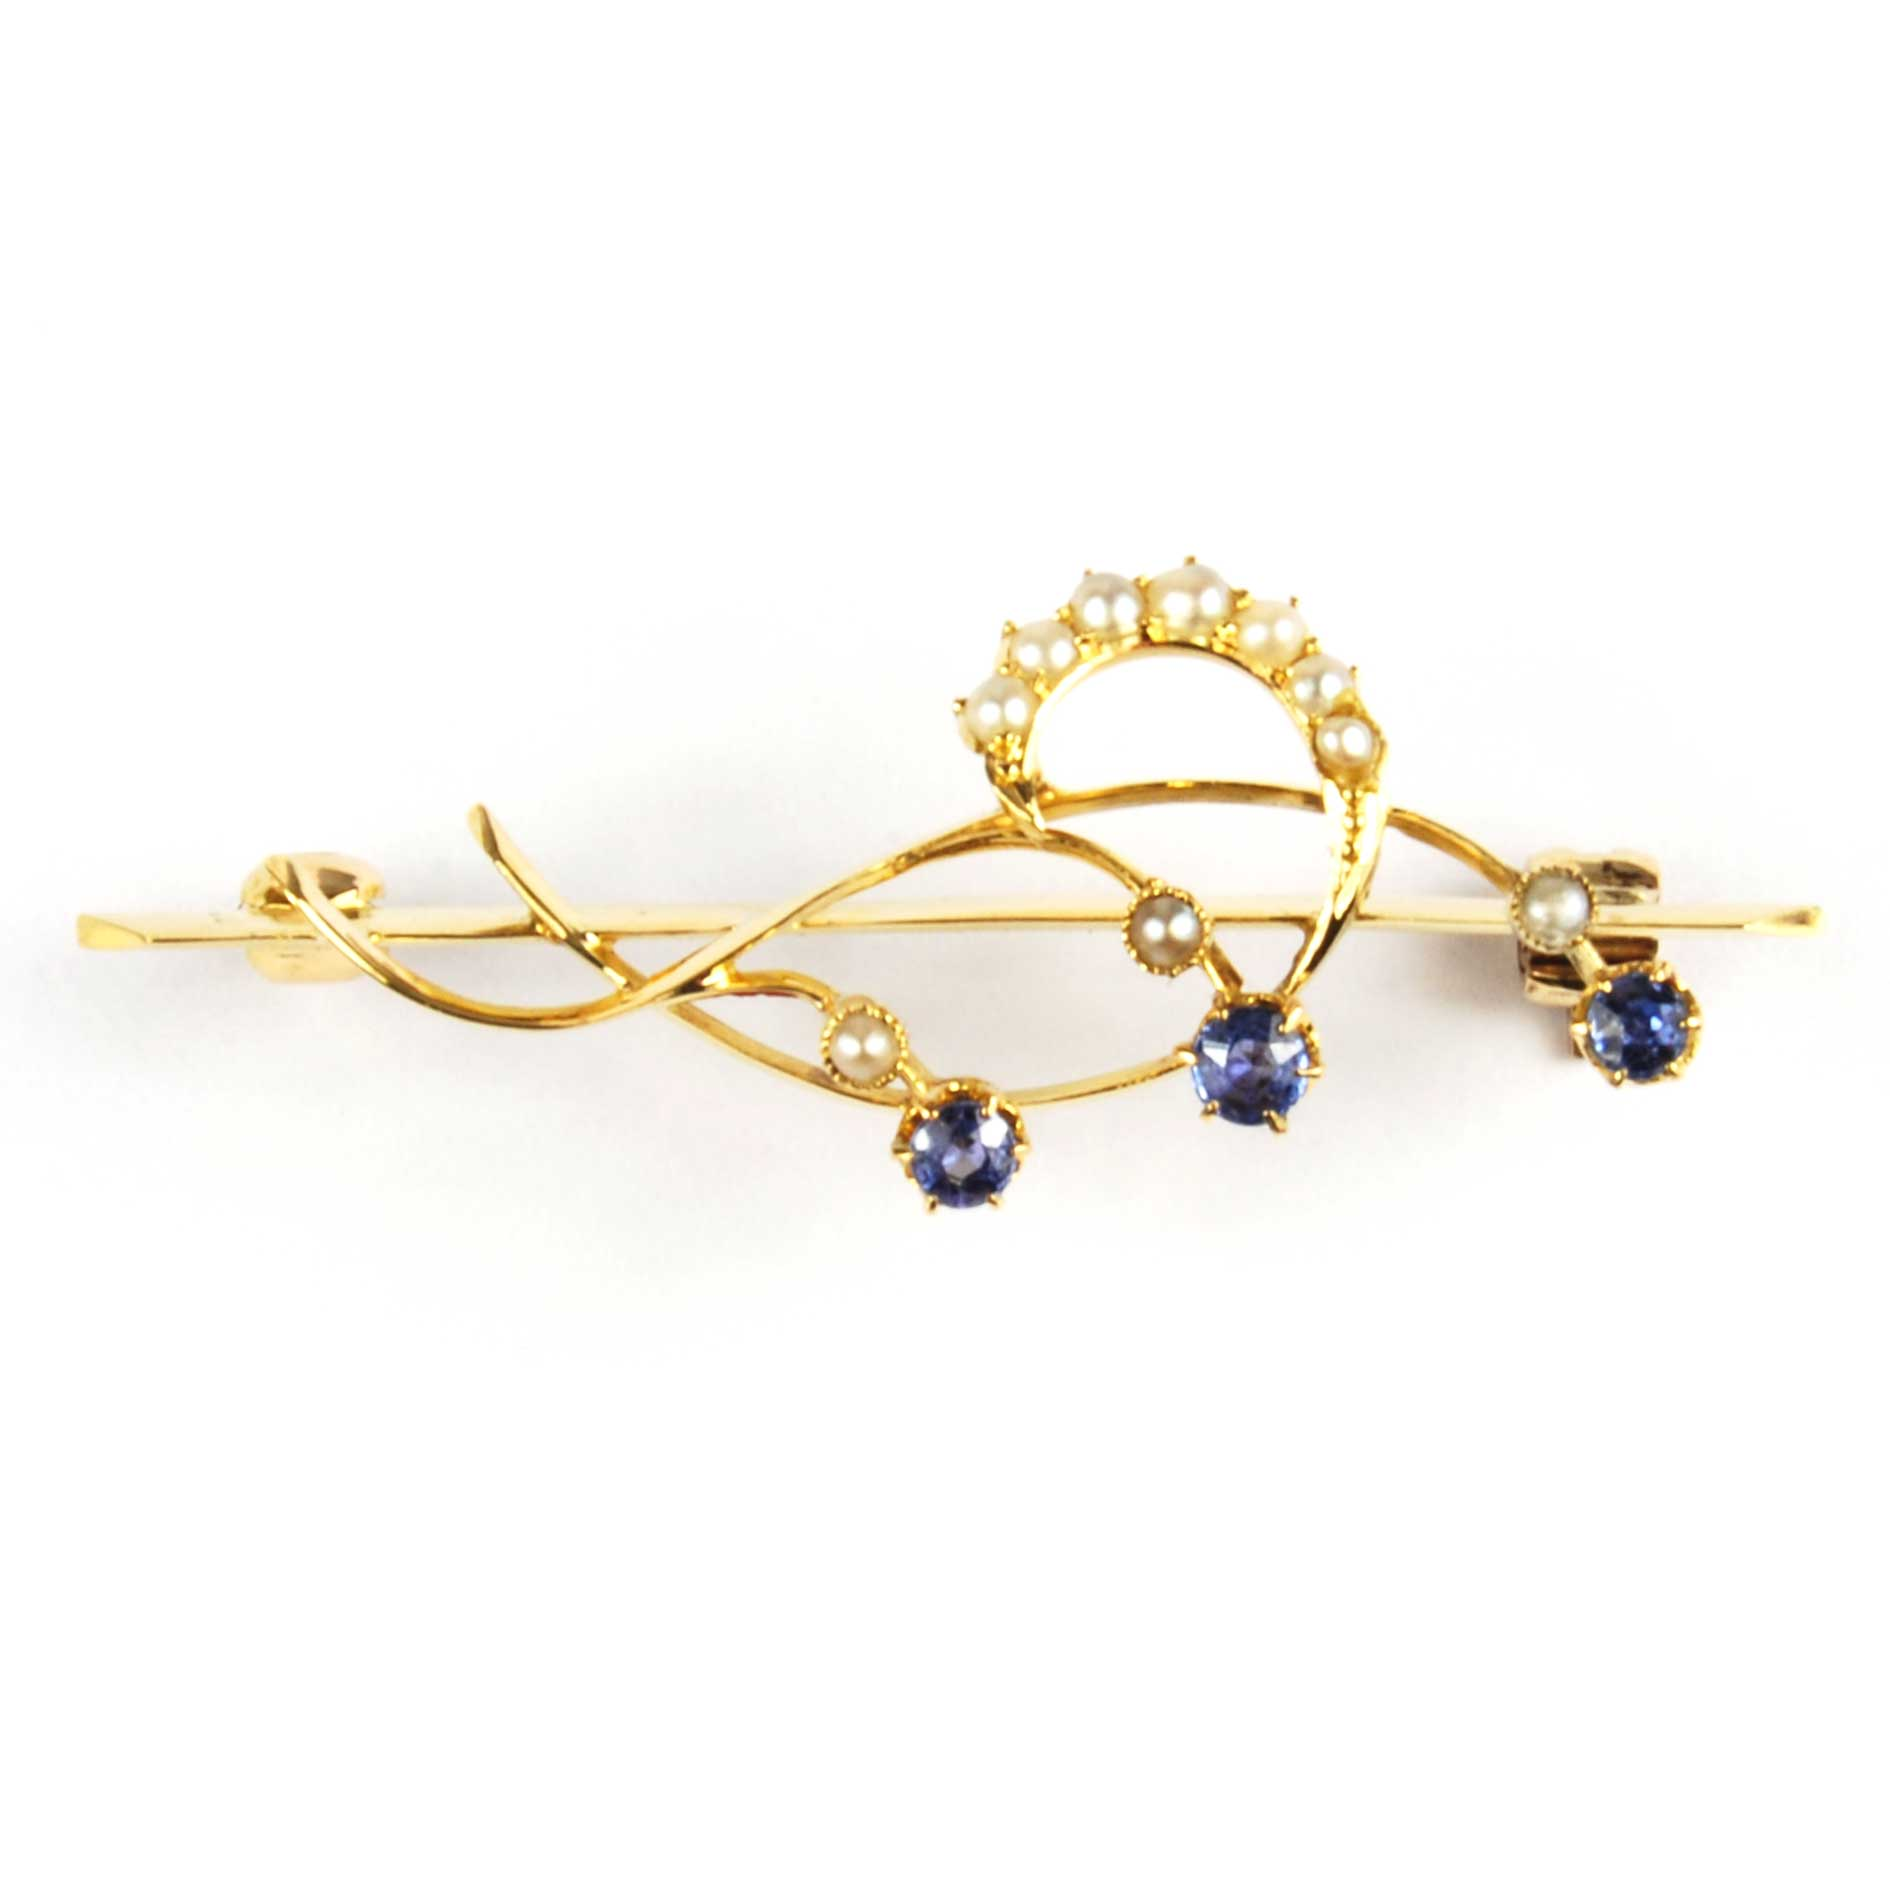 Antique Sapphire & Pearl Brooch